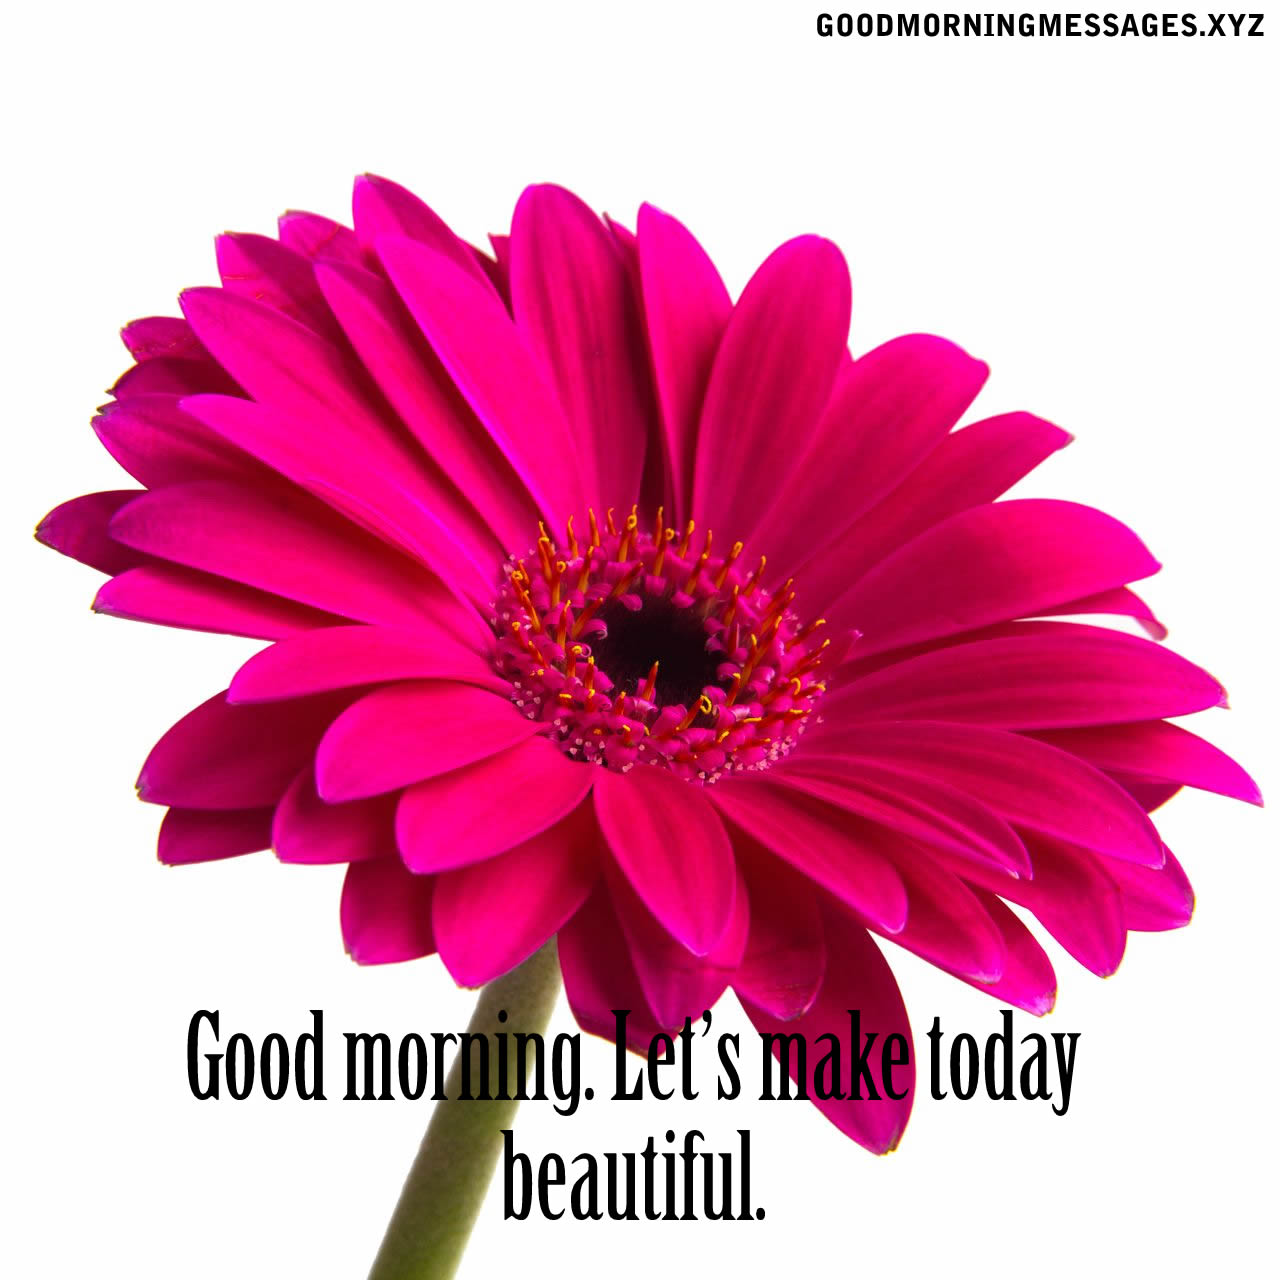 Good morning Let's make today beautiful